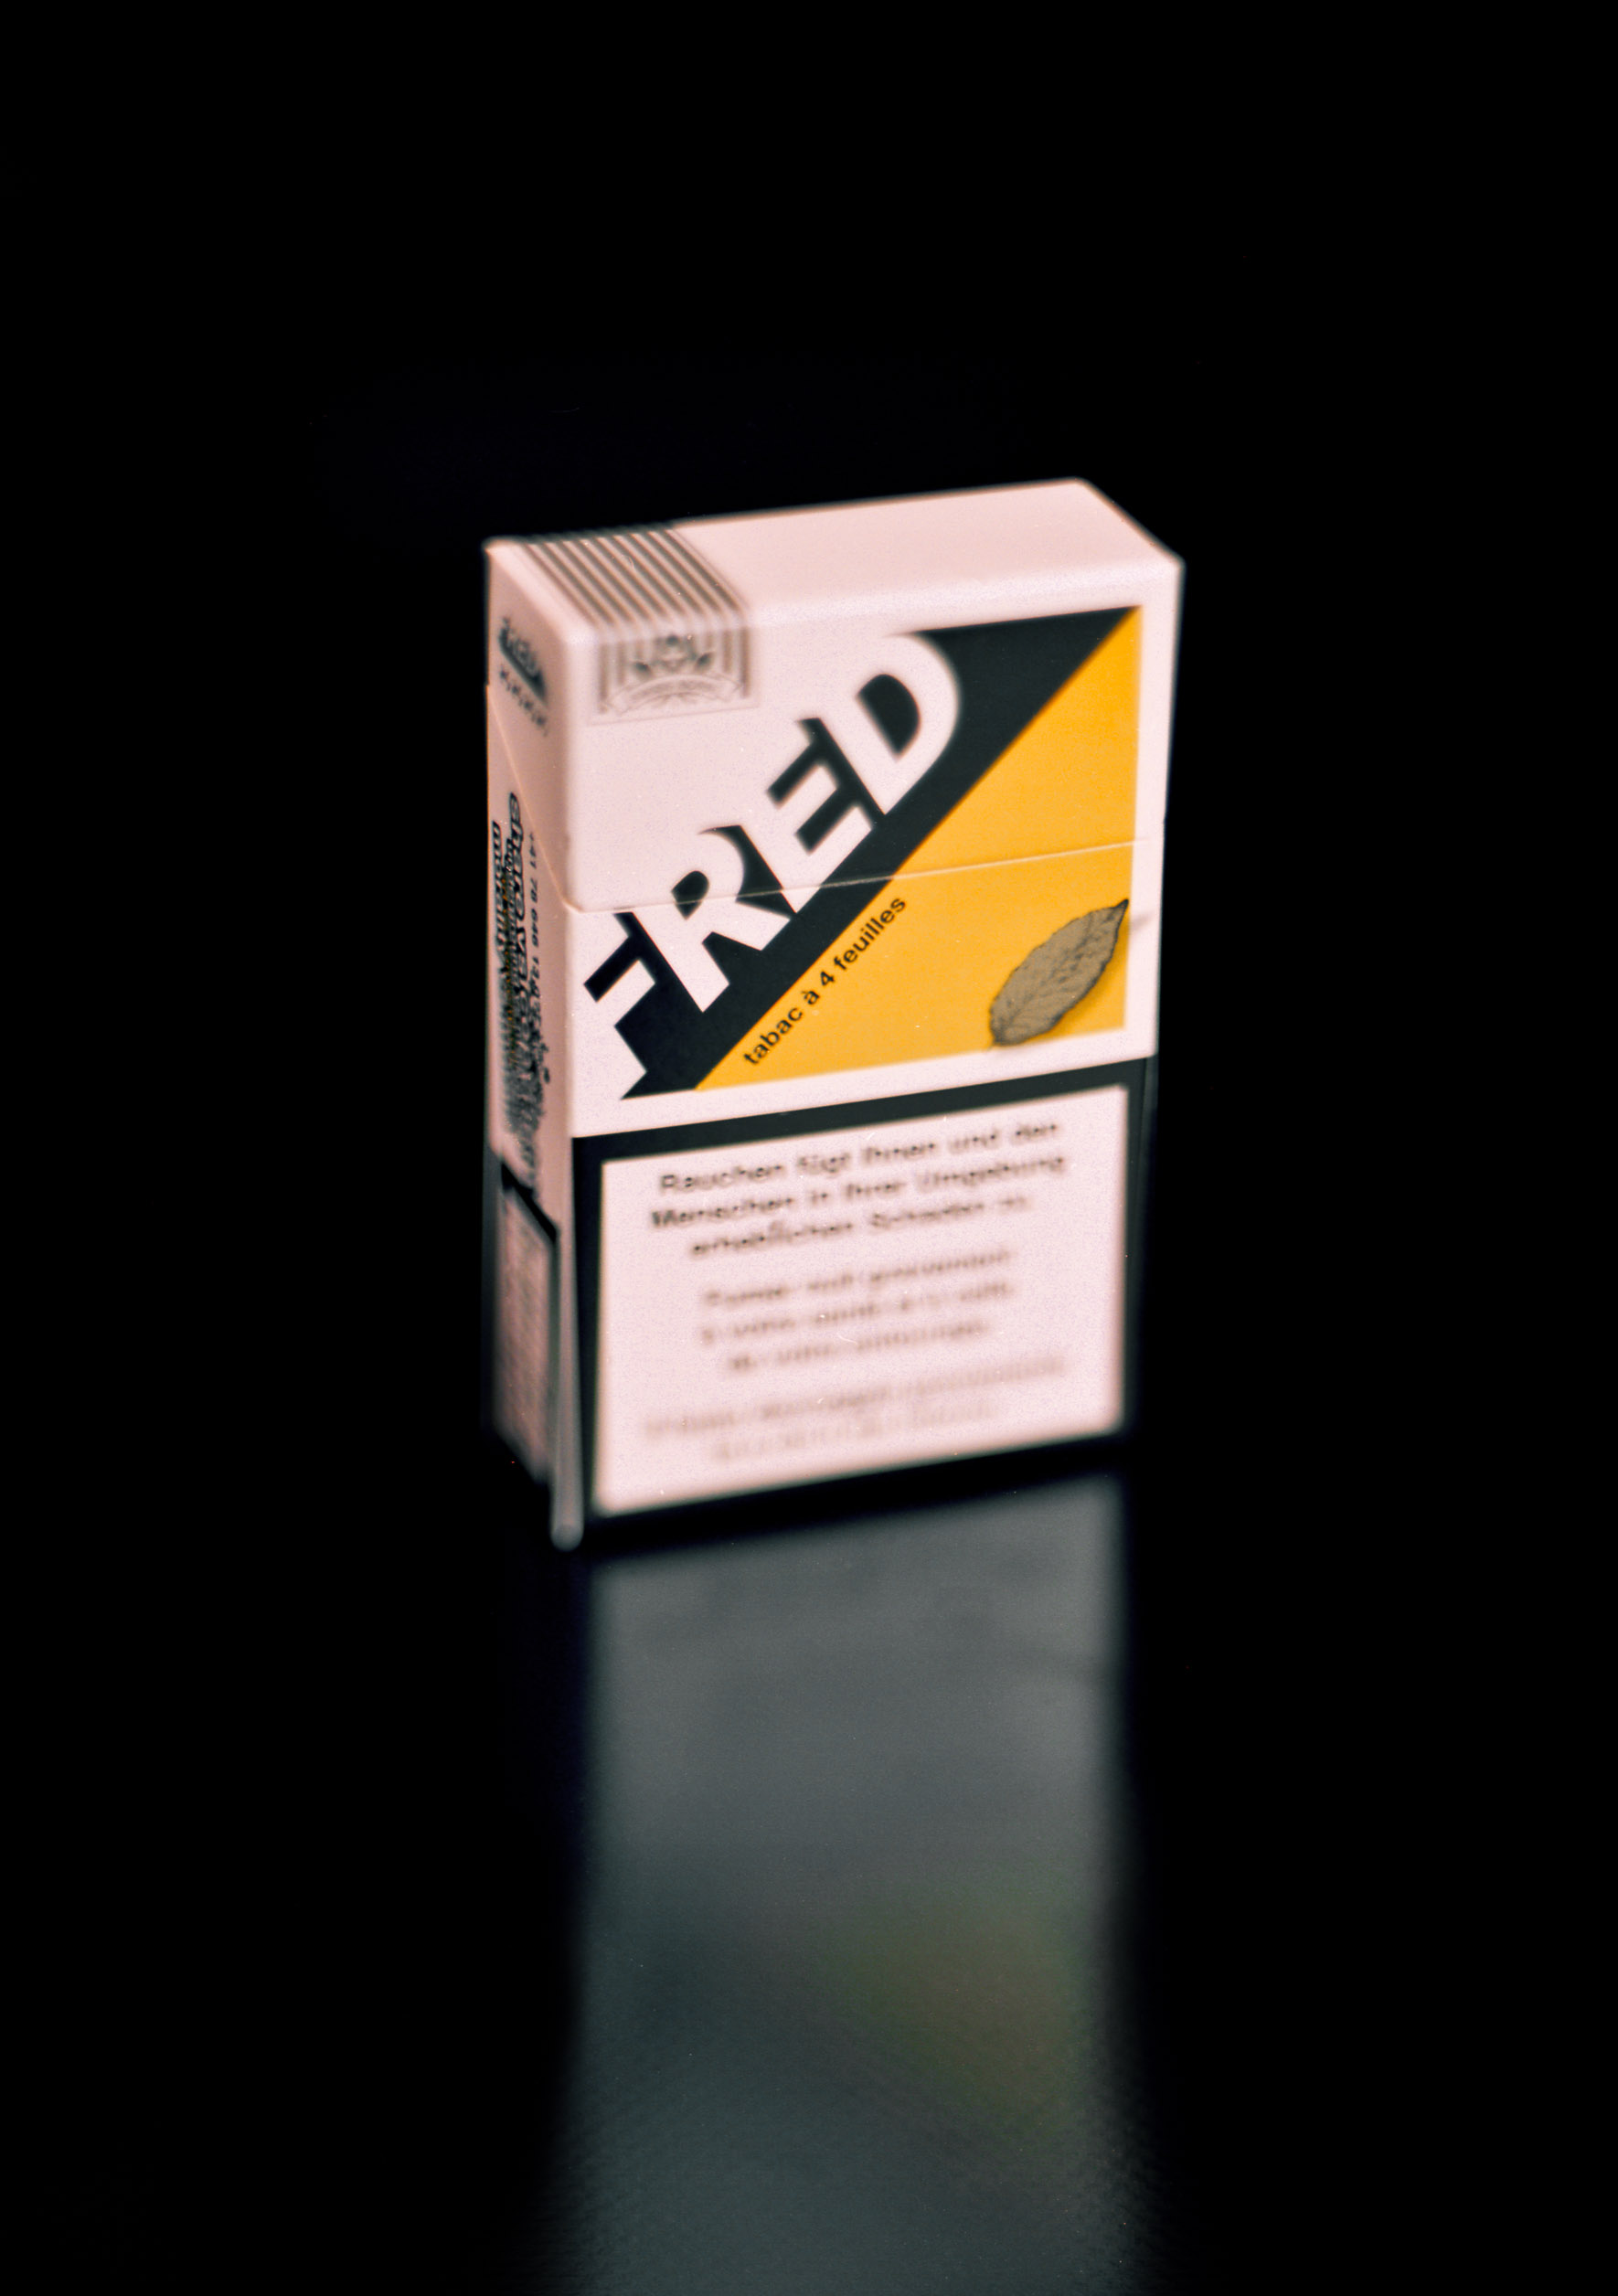 Fred_pack_ch020